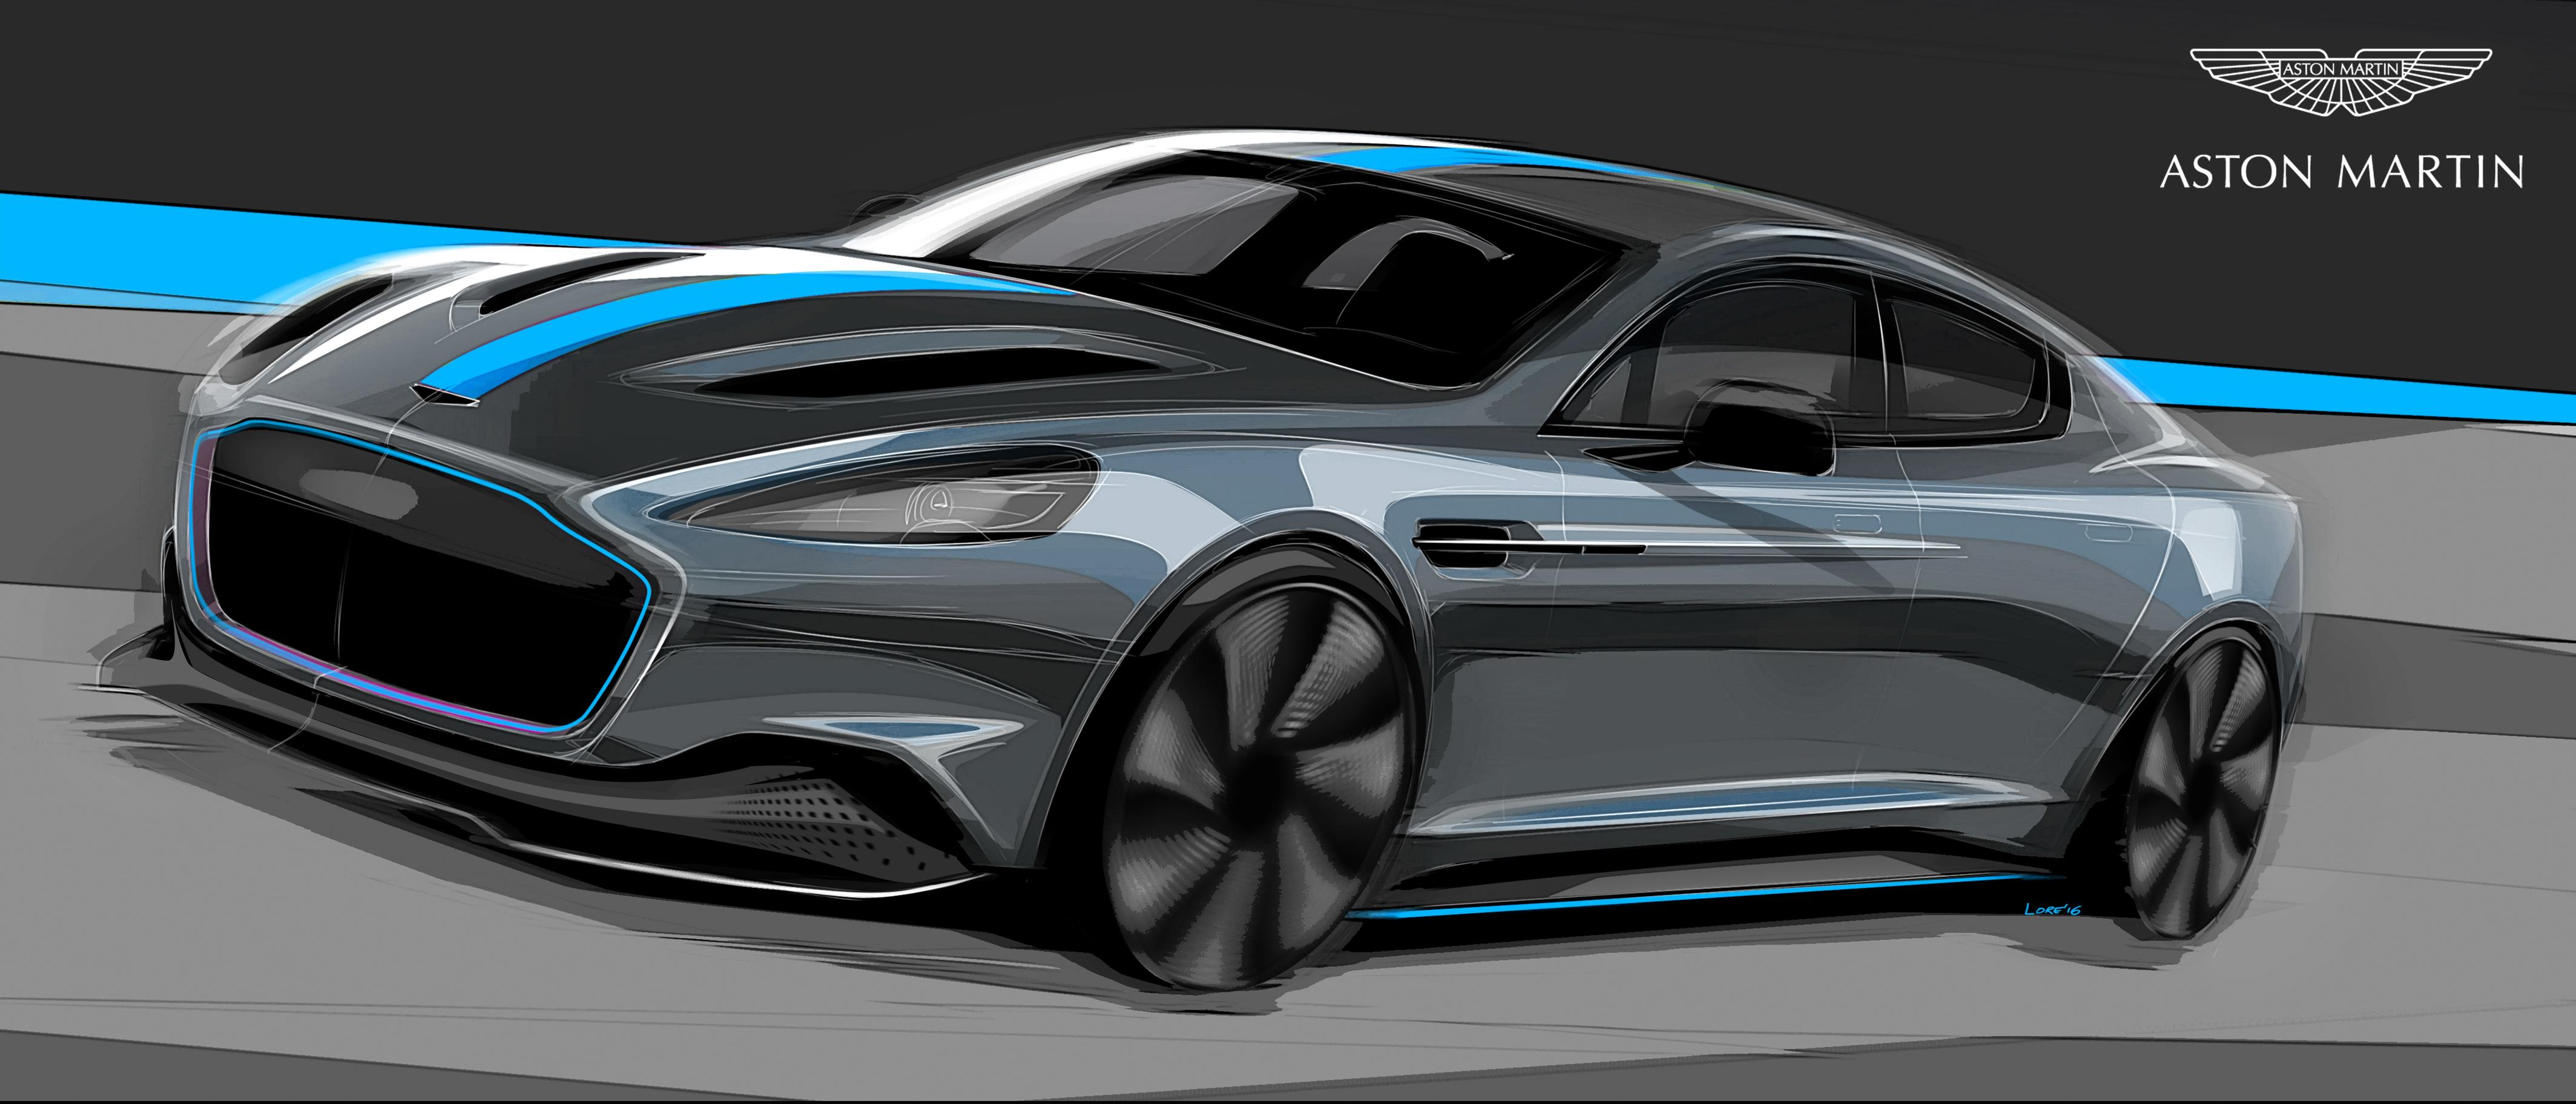 2020 Aston Martin DBX: Design, Powertrains, Arrival >> Aston Martin Lineup To Be Electrified By Mid 2020s